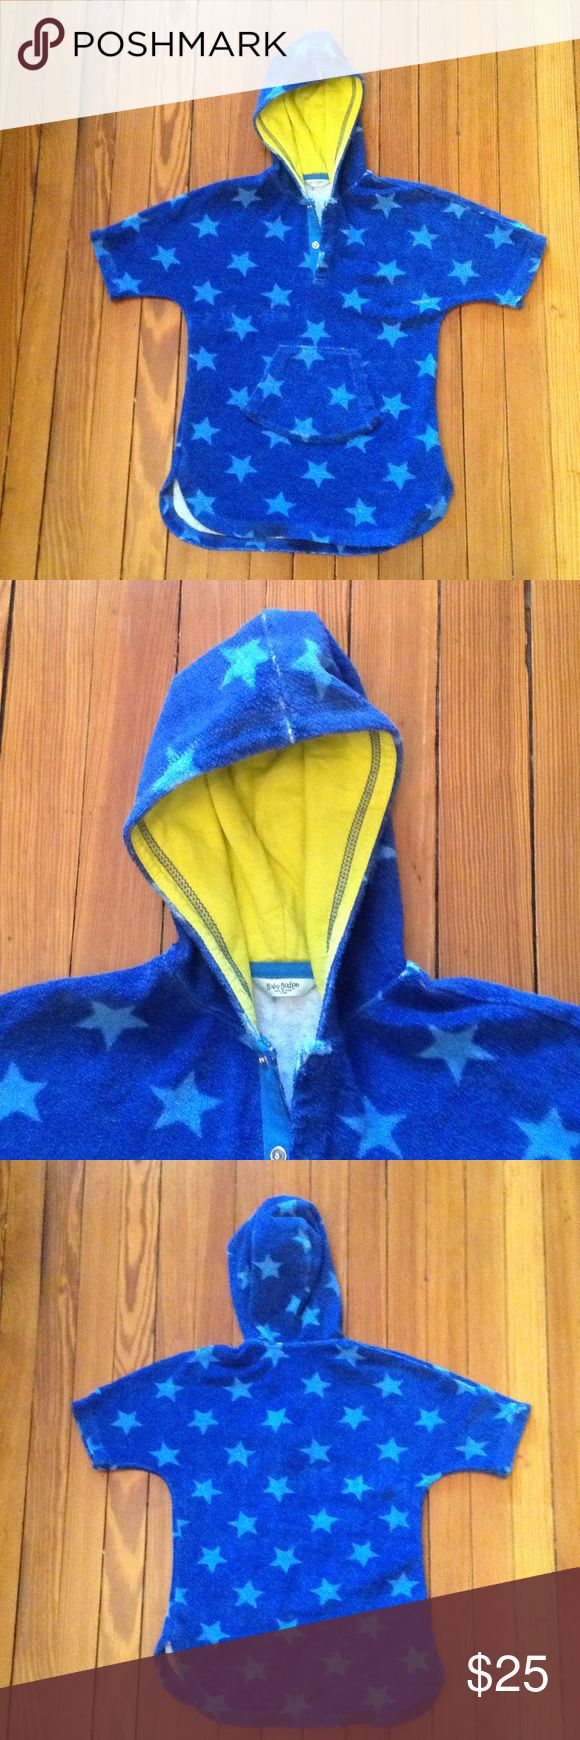 Boden swim cover up Boden terry cloth swim cover up, size 2-3 years old. Functional pocket, hood, and snaps at neck.  Perfect for after the beach pool, or water park. Excellent used condition. Boden Swim Coverups